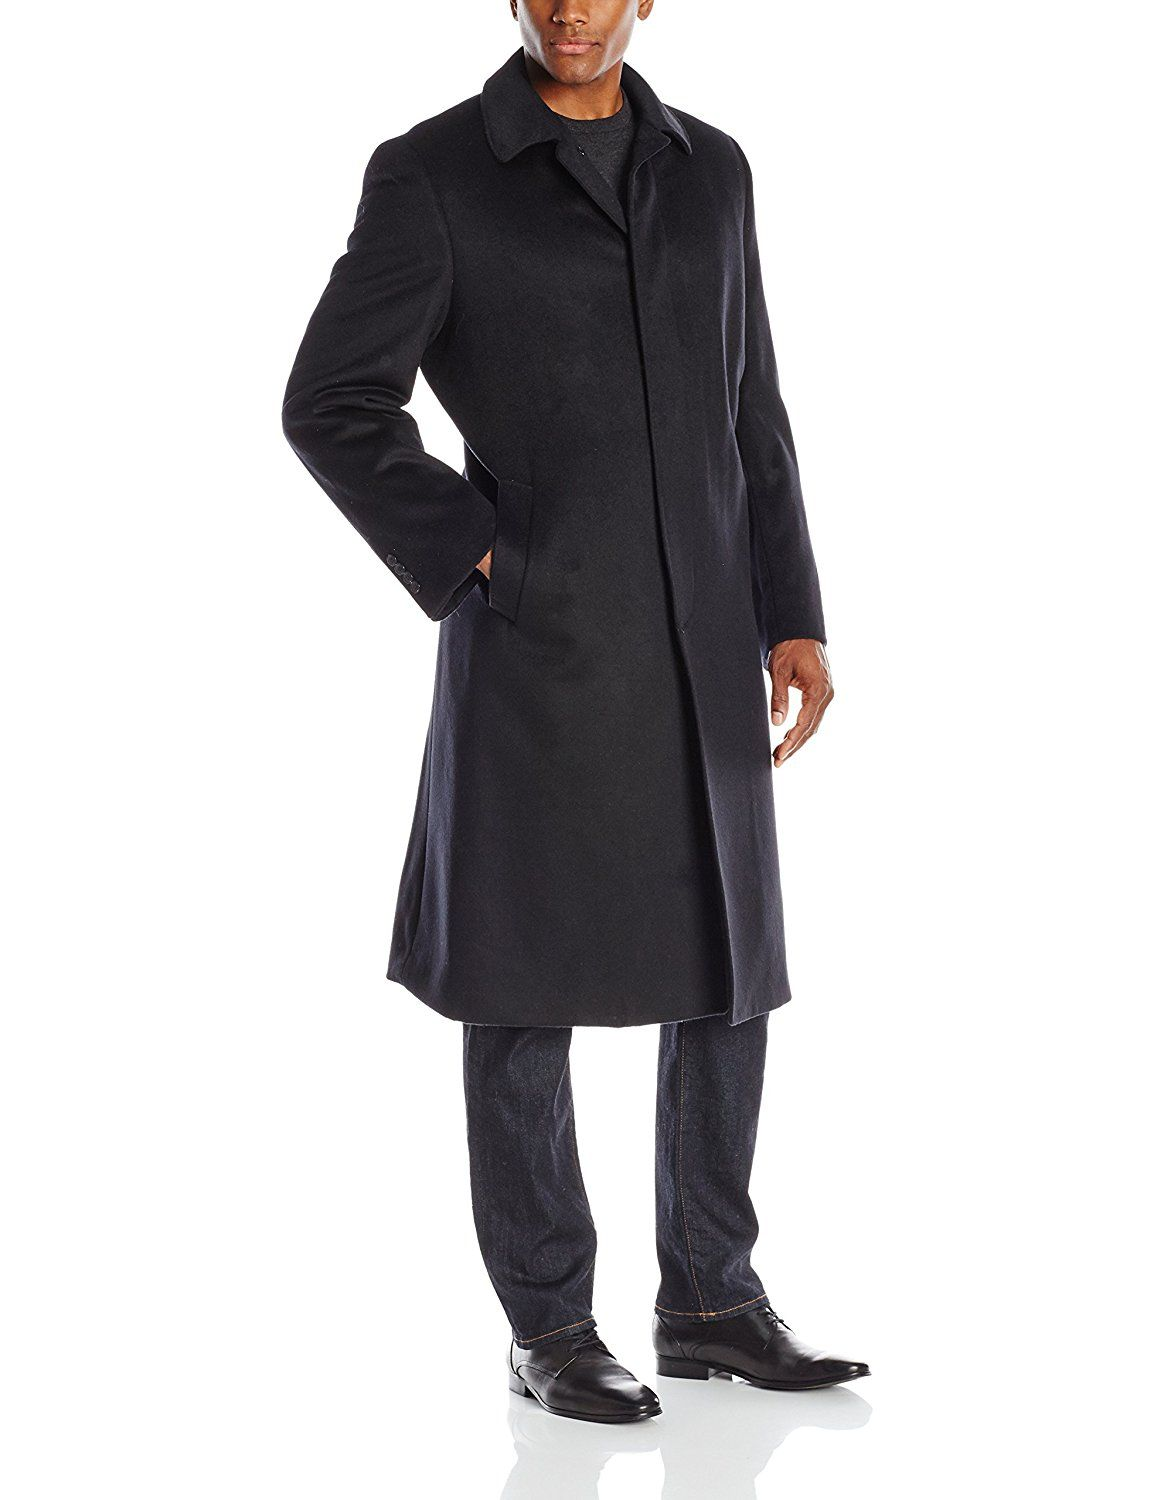 fccda94f7b1 Hart Schaffner Marx Men s Stanley Cashmere-Blend Coat at Amazon Men s  Clothing store